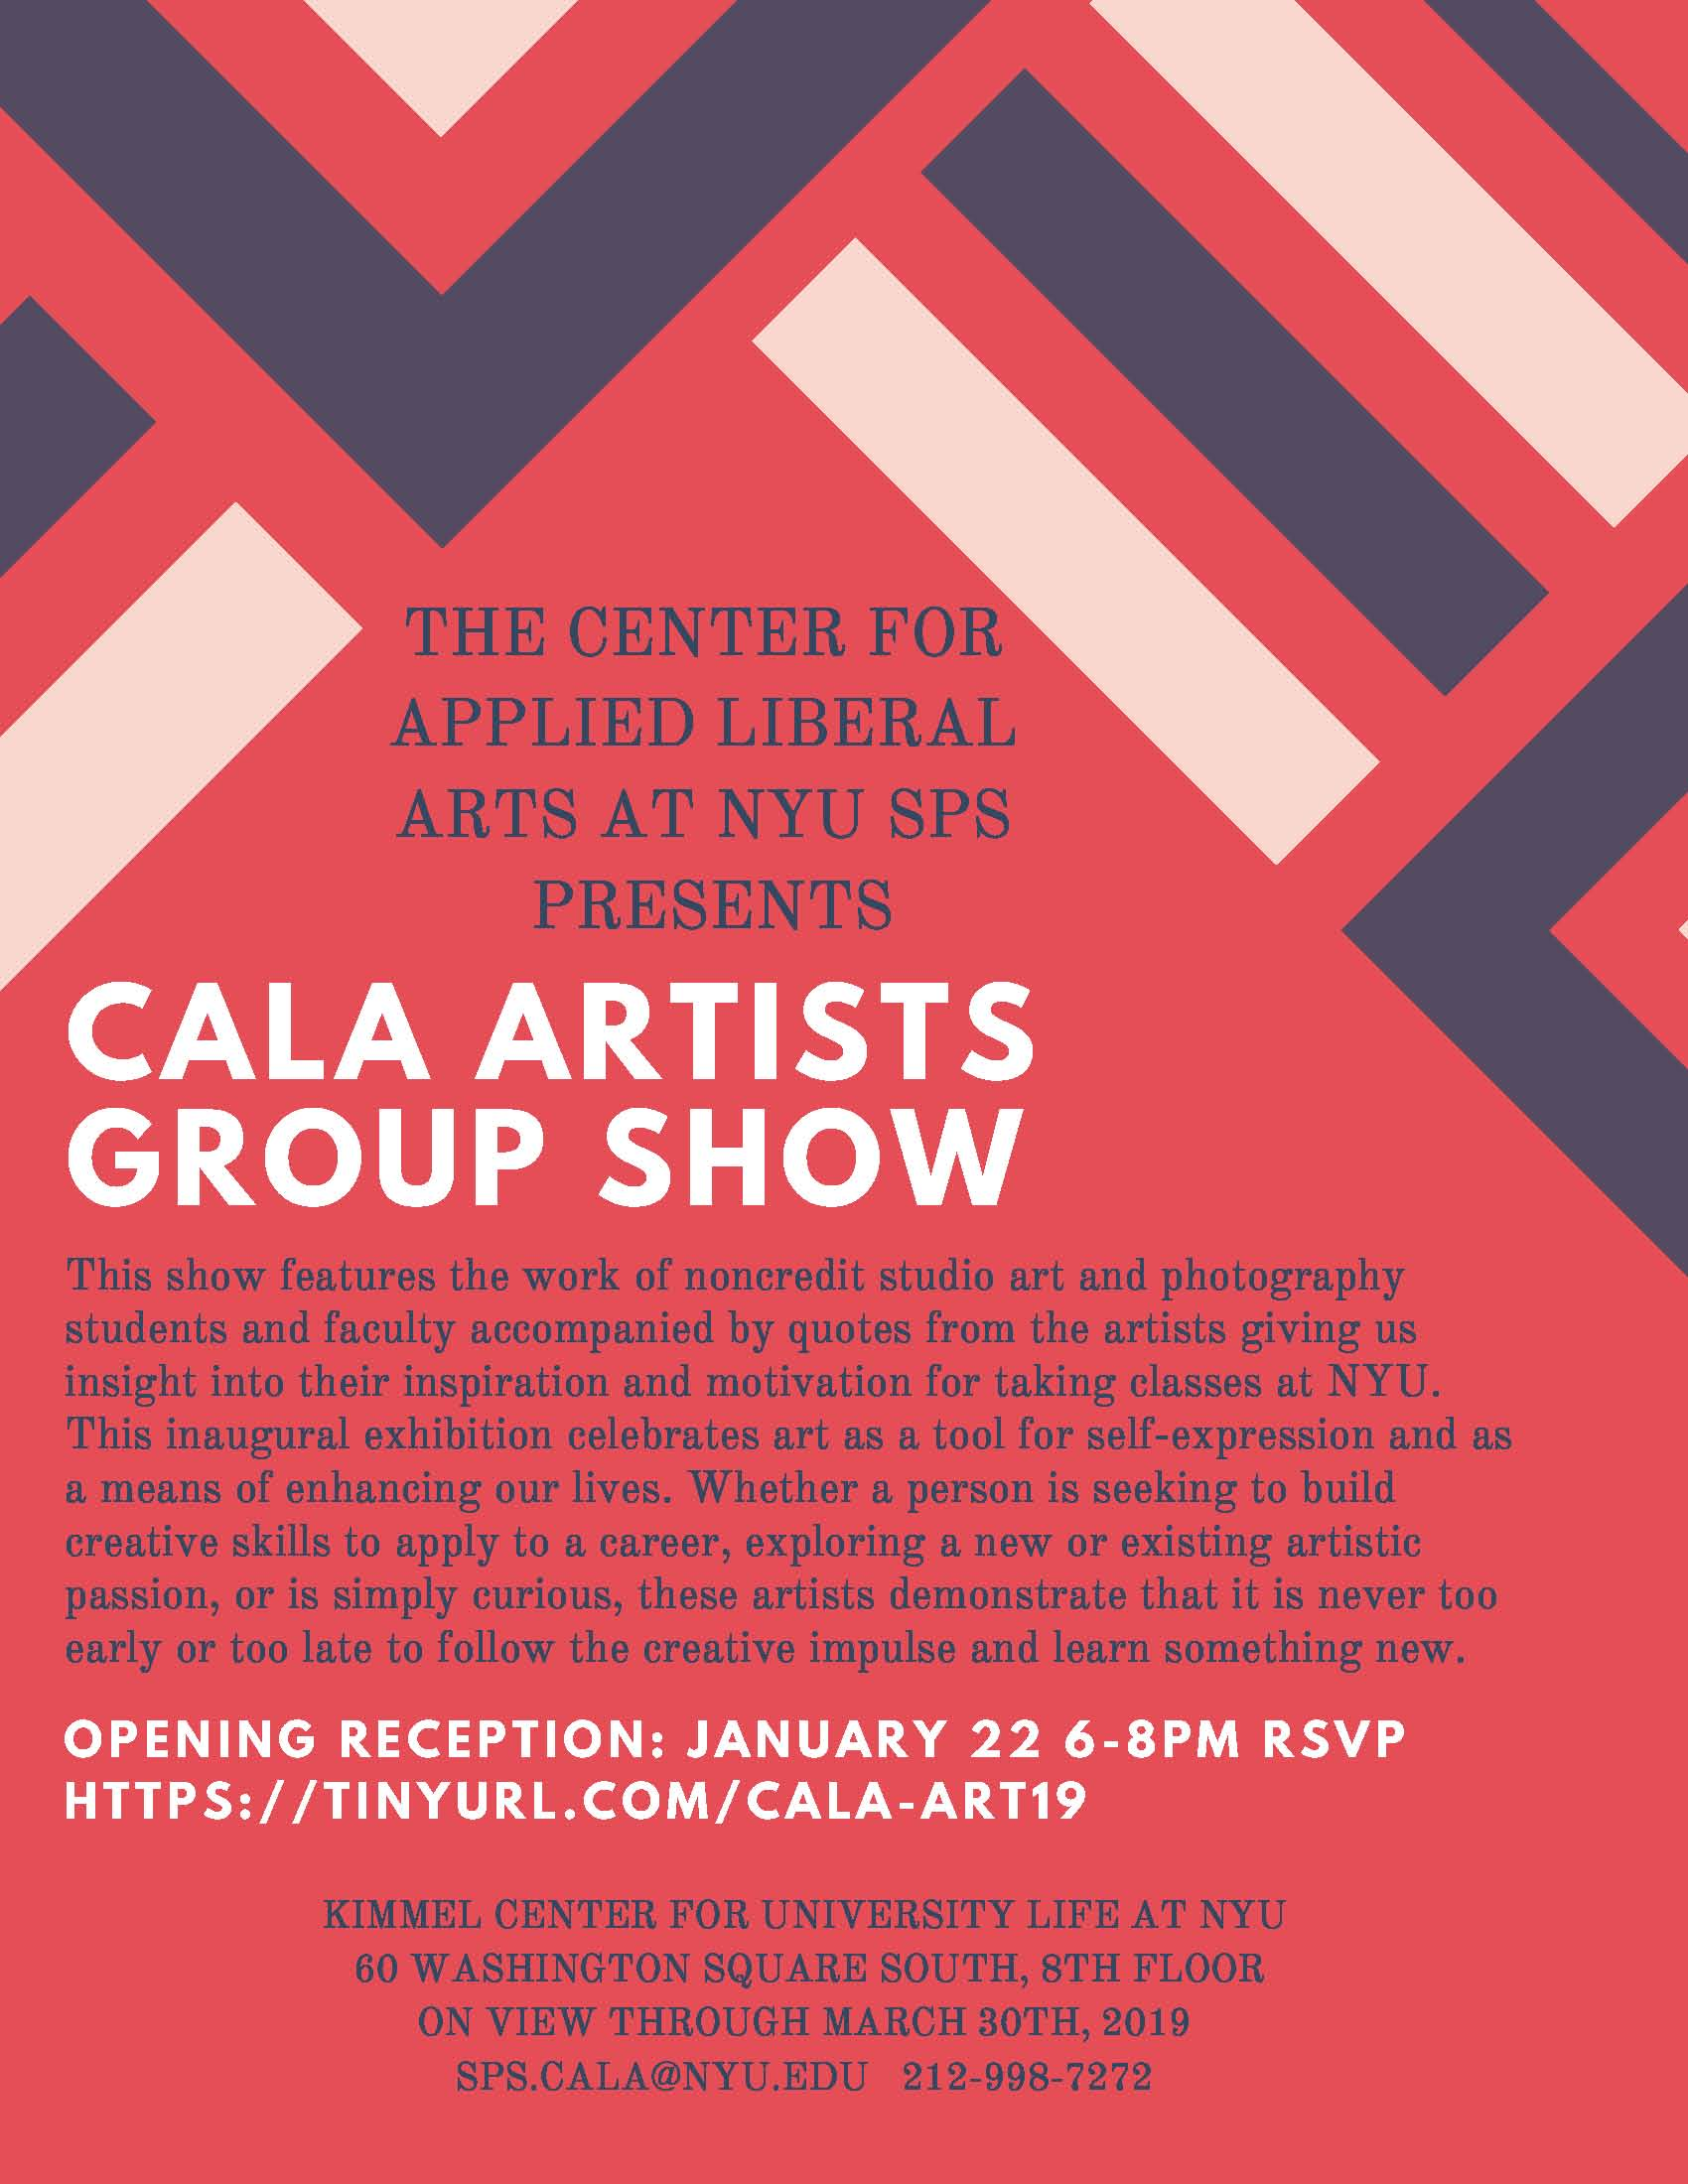 Cala Artists Group Show First Annual Exhibition